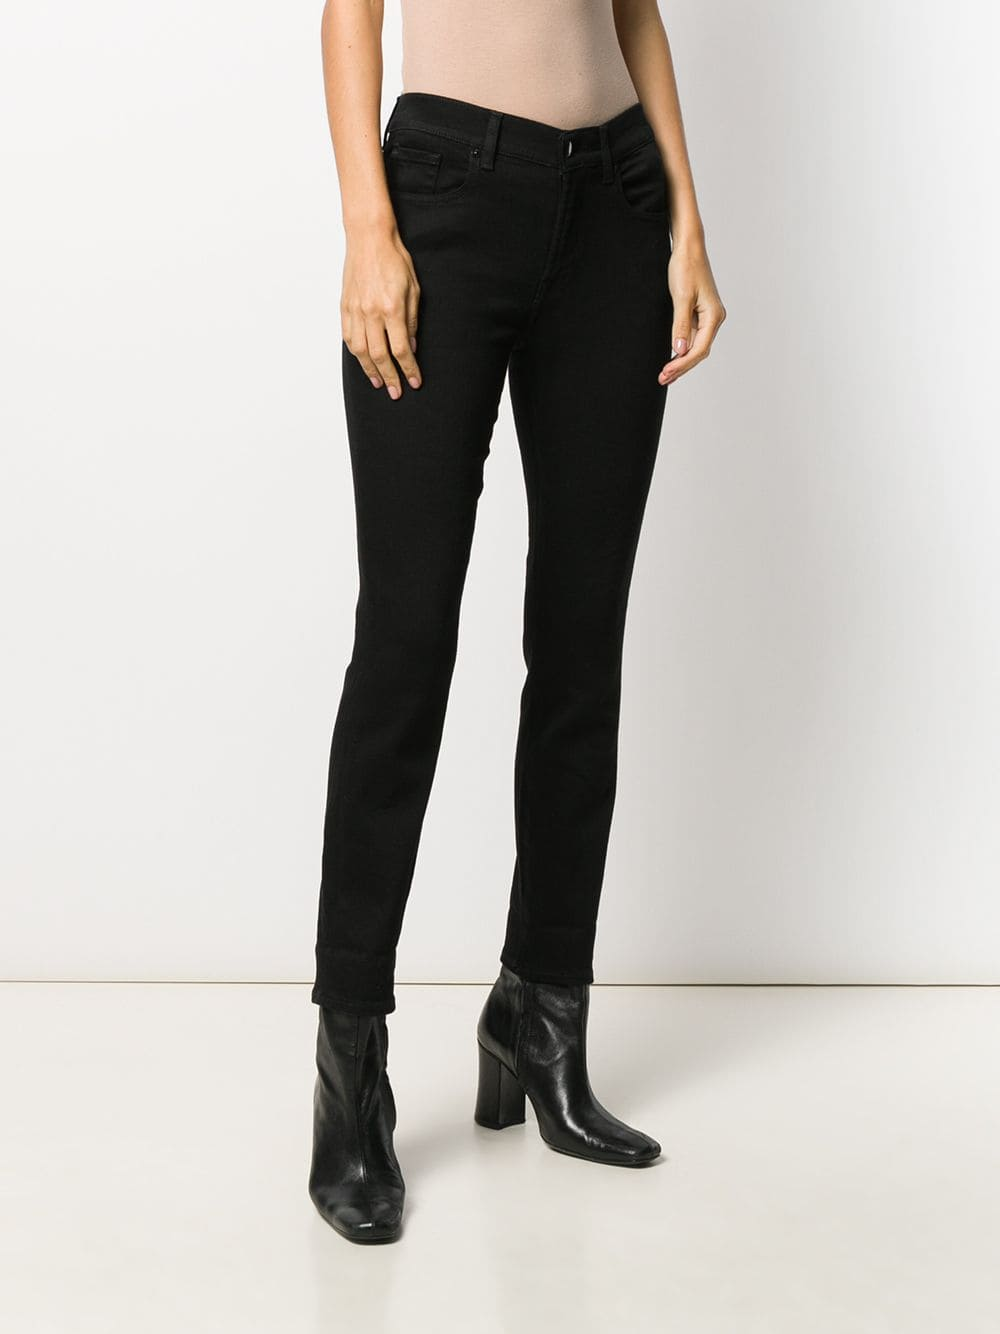 Picture of 7 For All Mankind | Relaxed Skinny Jeans